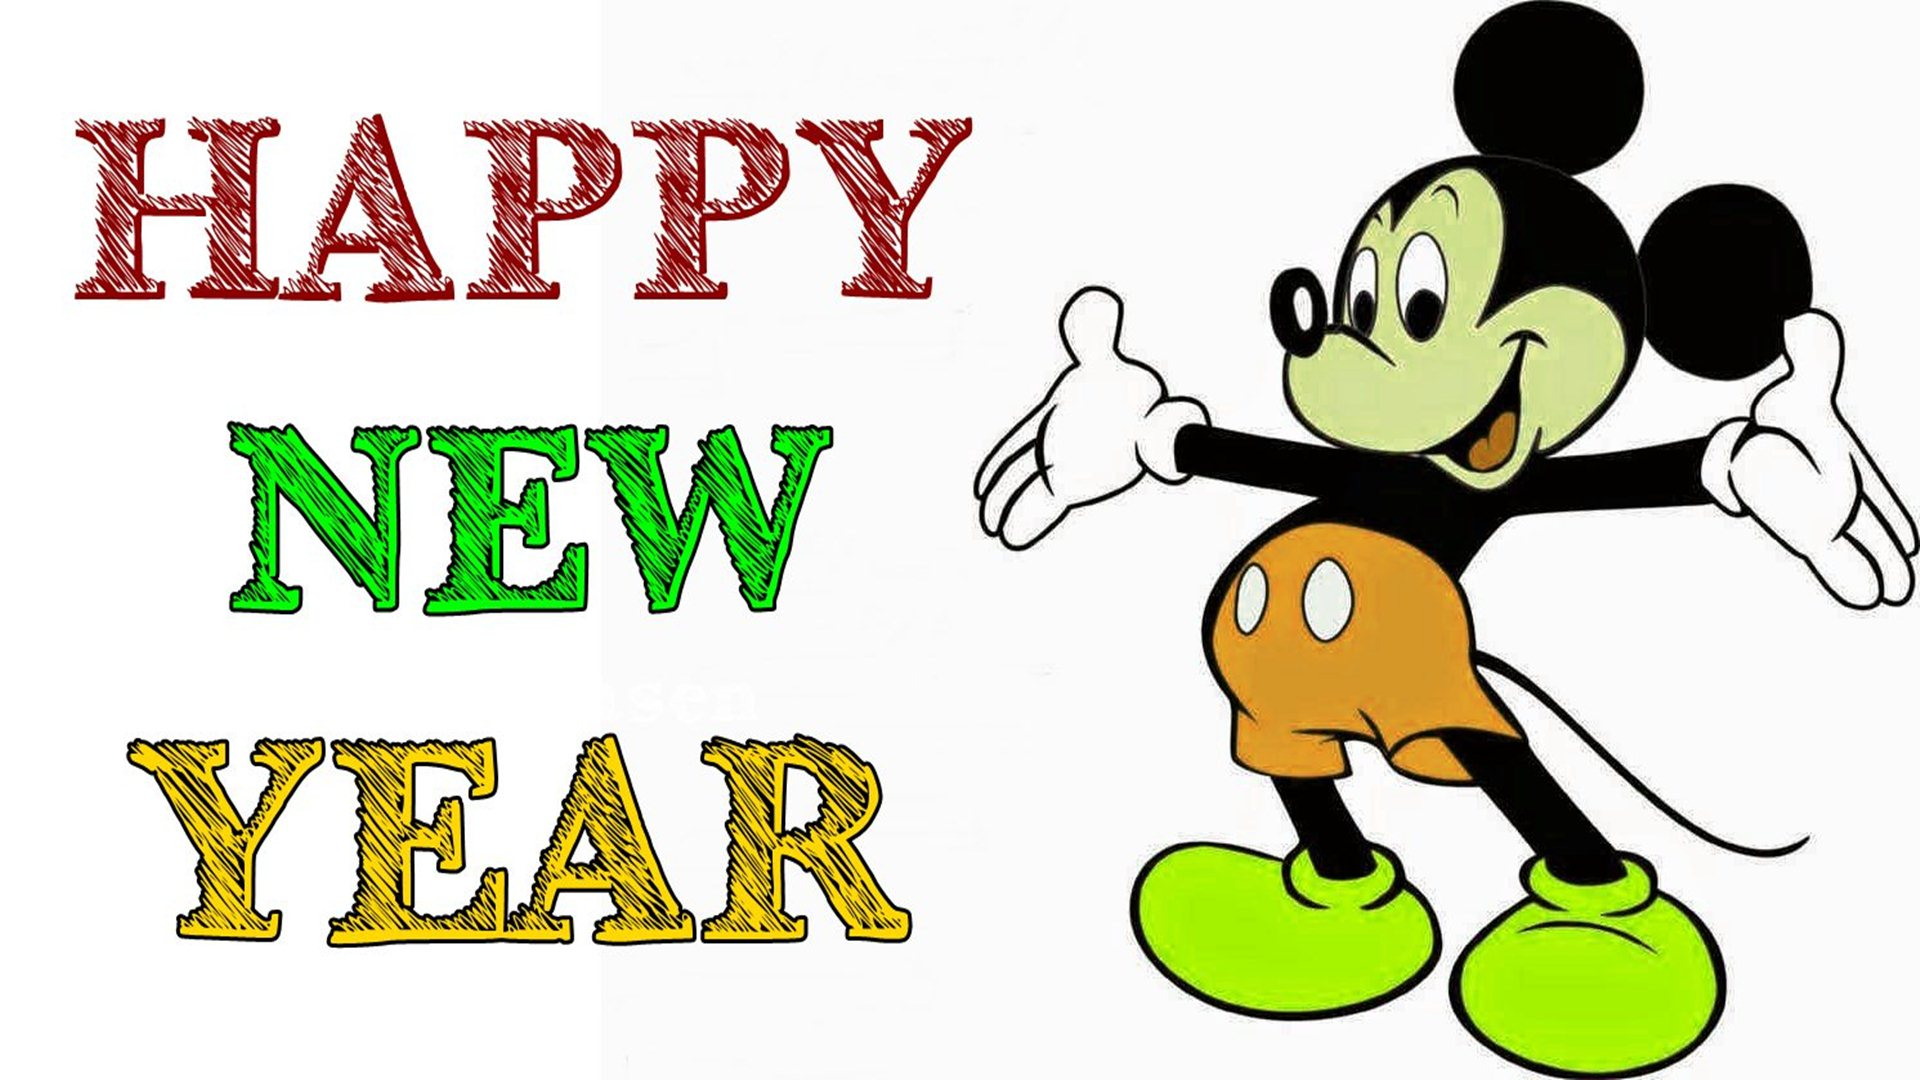 1920x1080 Happy New Year Clip Art Image Free Download Con Happy New Year Png